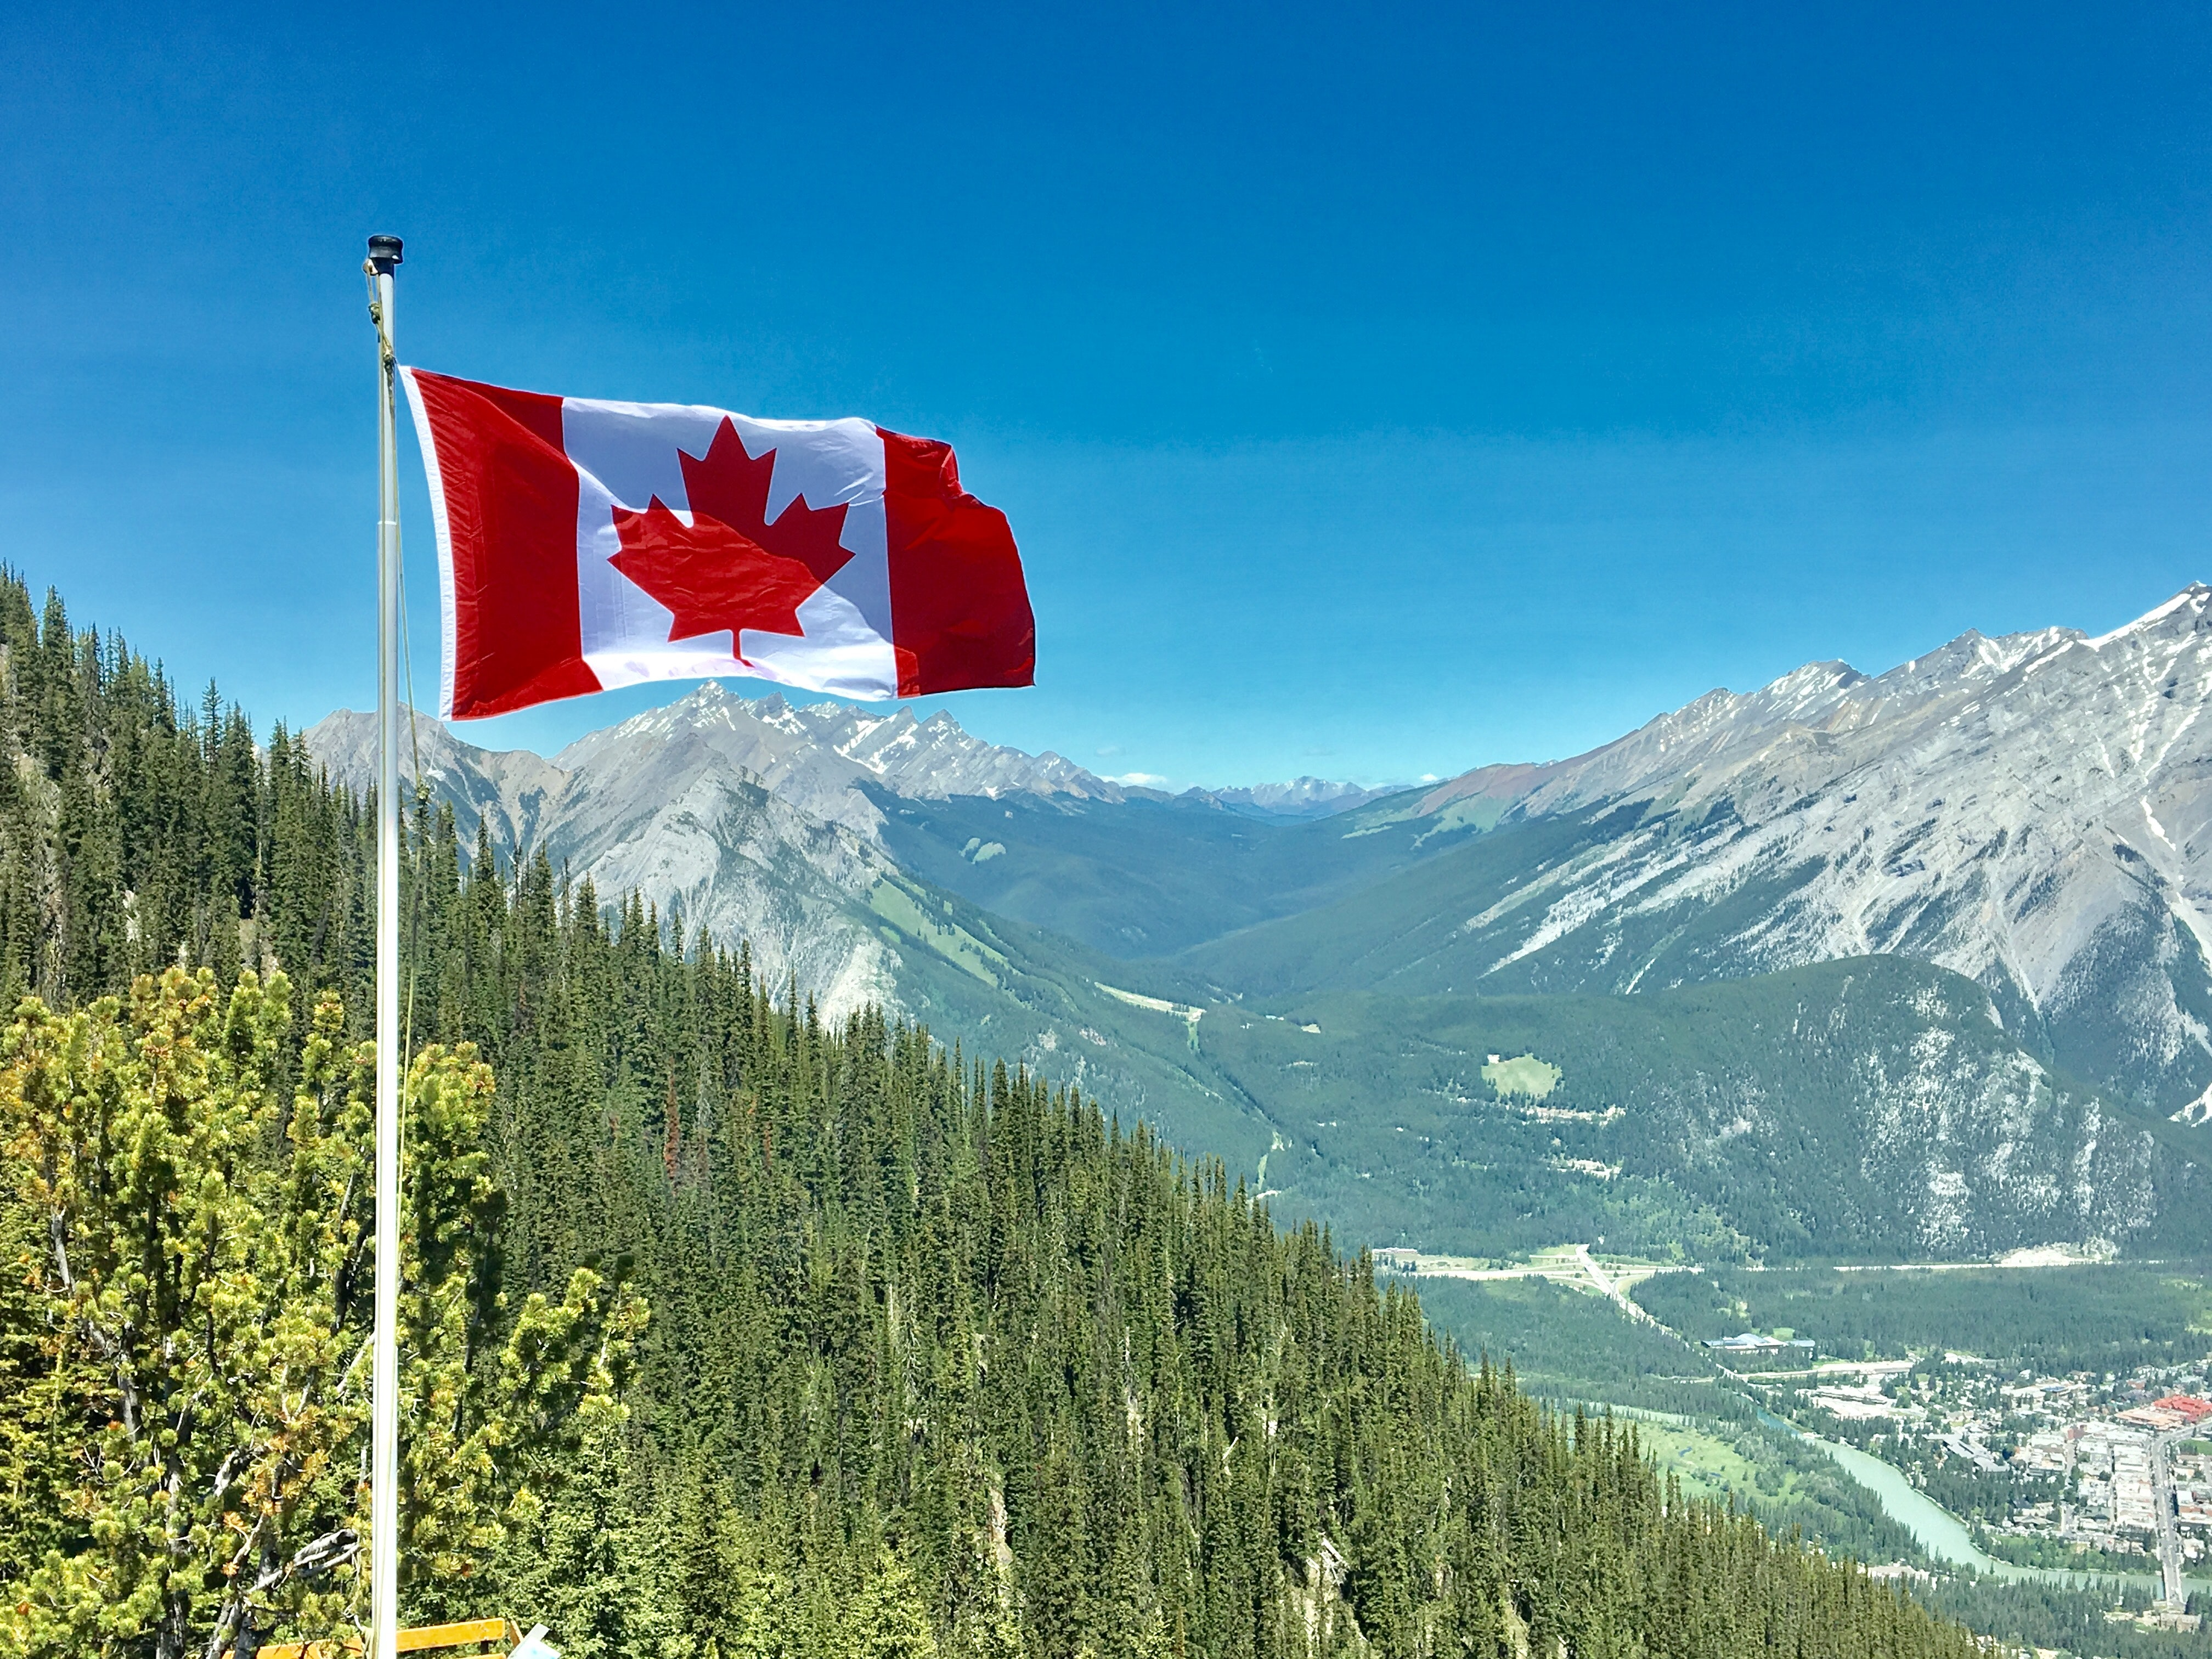 Canada Flag With Mountain Range View, Adventure, Outdoors, Valley, Trees, HQ Photo